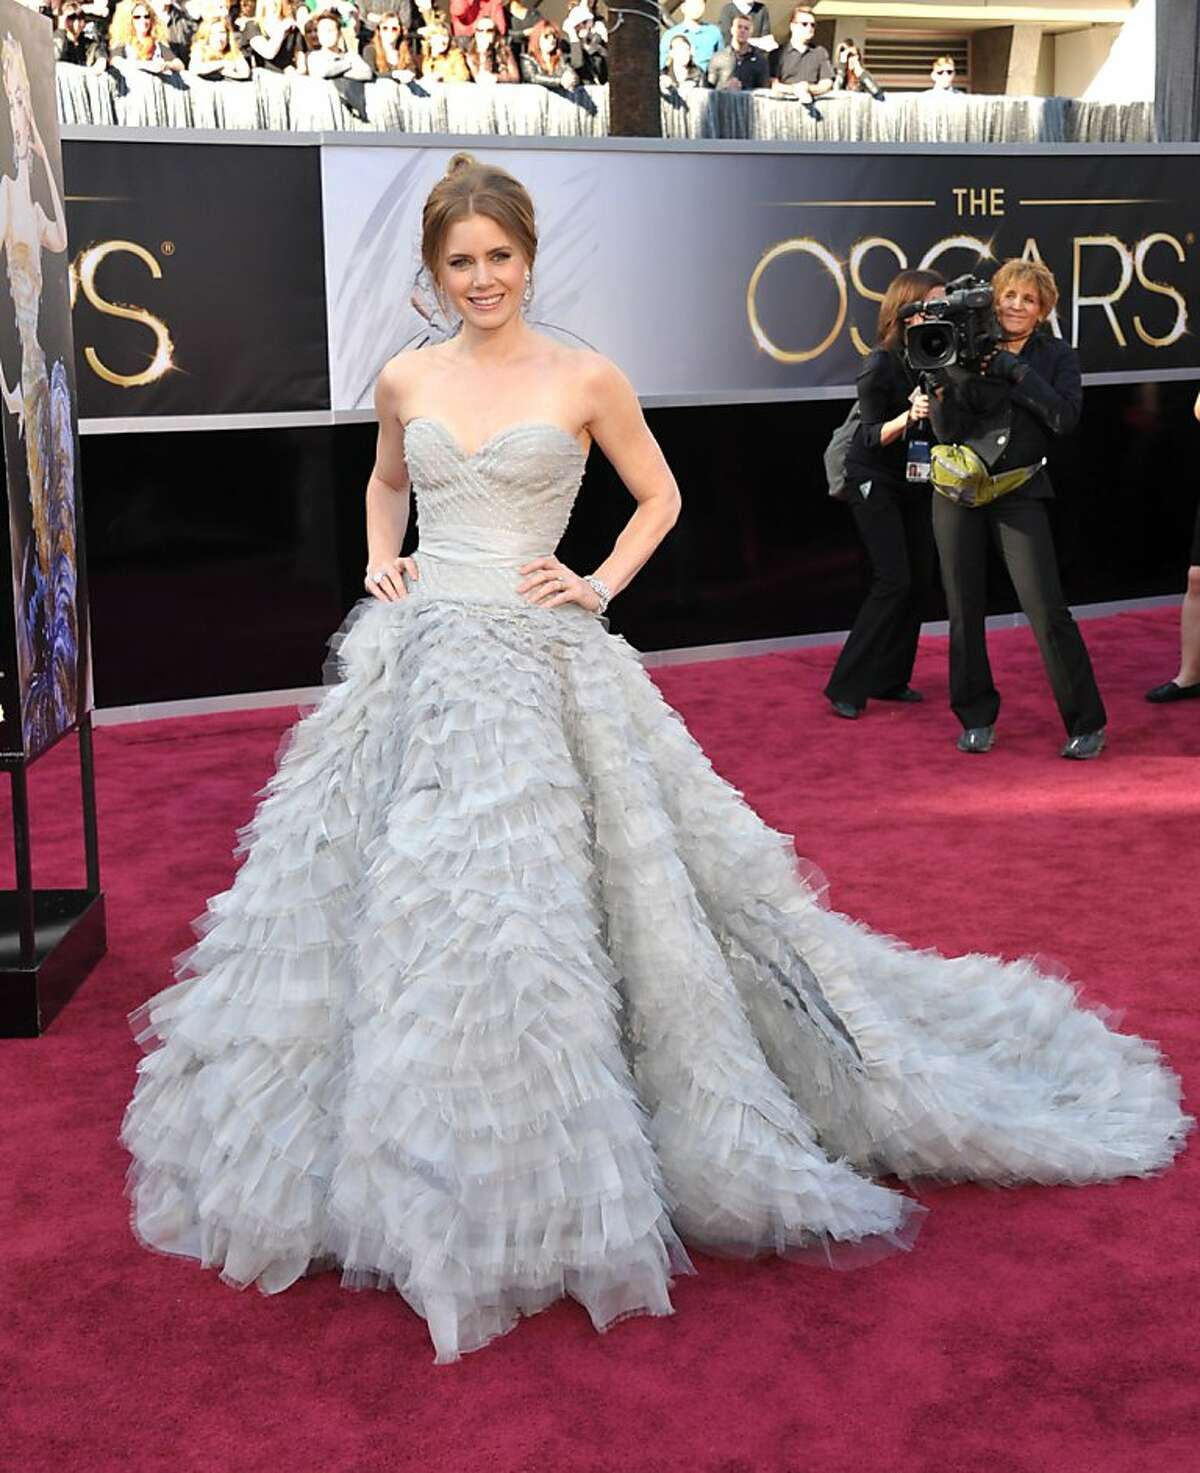 Worst: Amy Adams has the fashion world at her feet, and she picks the pigeon dress?